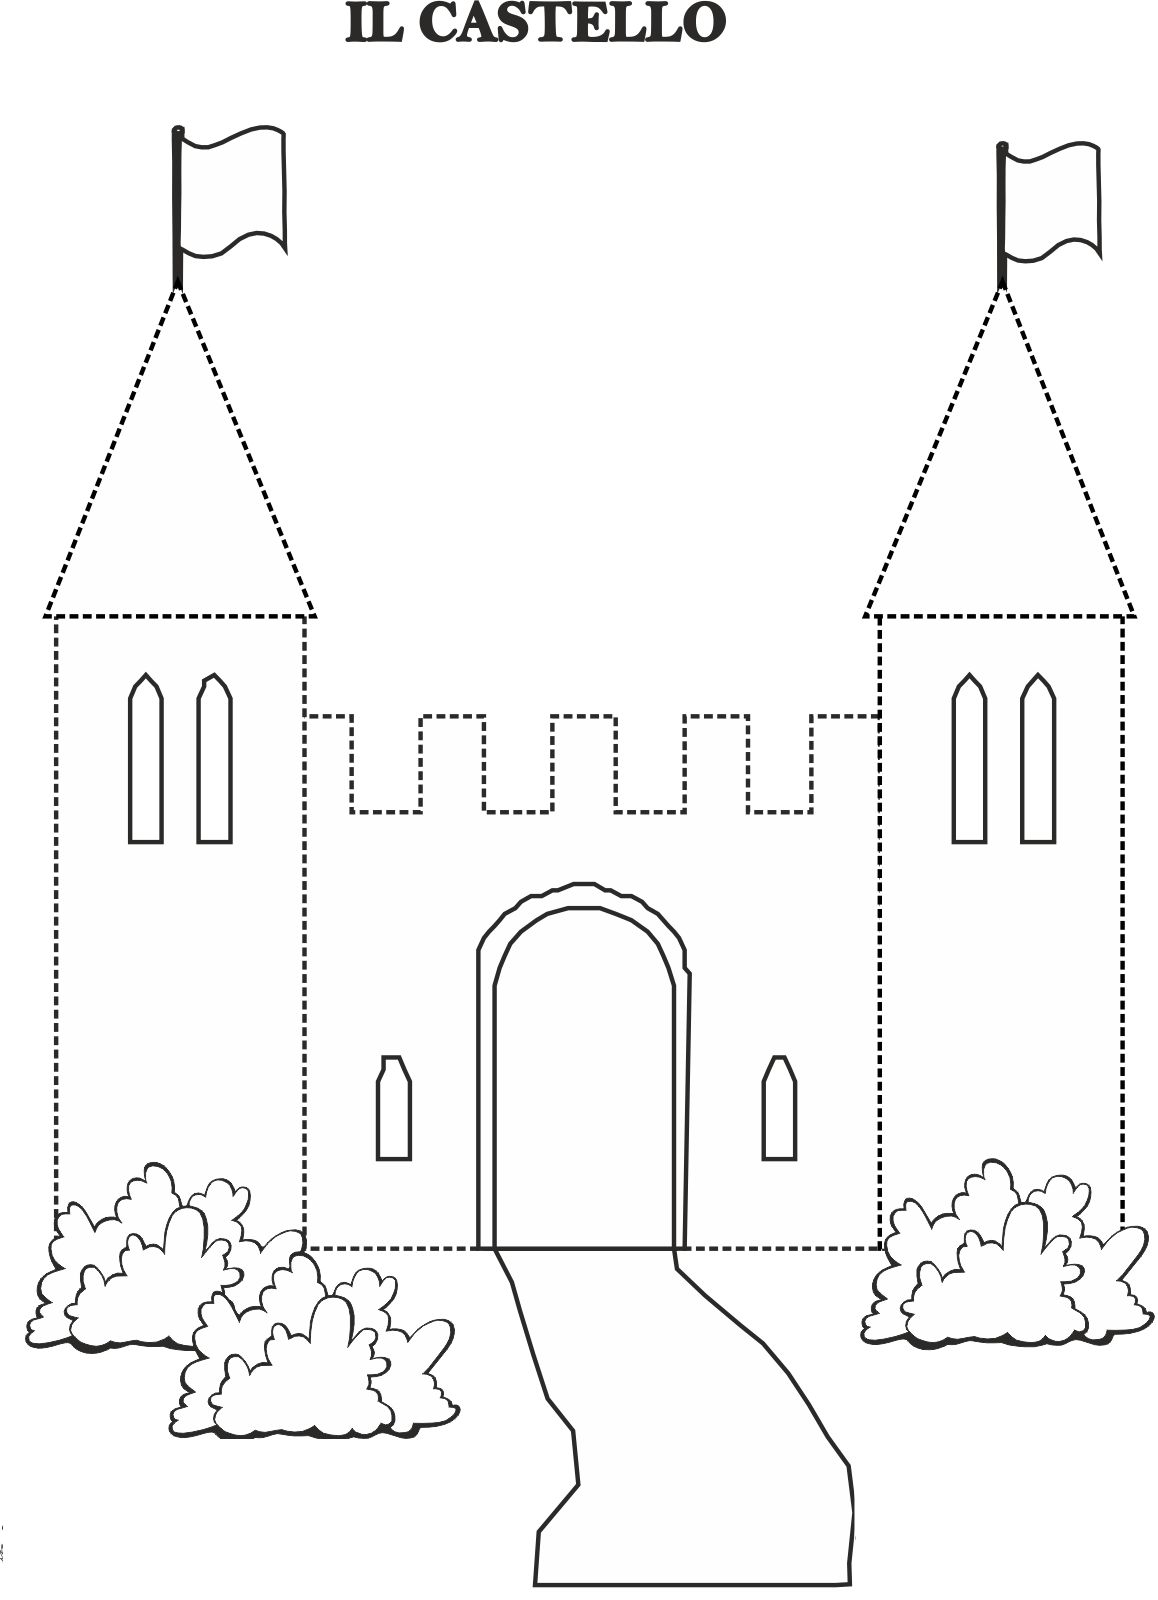 castle-trace-line-worksheet Queen Worksheet For Pre on prefixes re, writing shapes, printable letter, tracing shapes, grade printable, algebra fractions, printable matching,